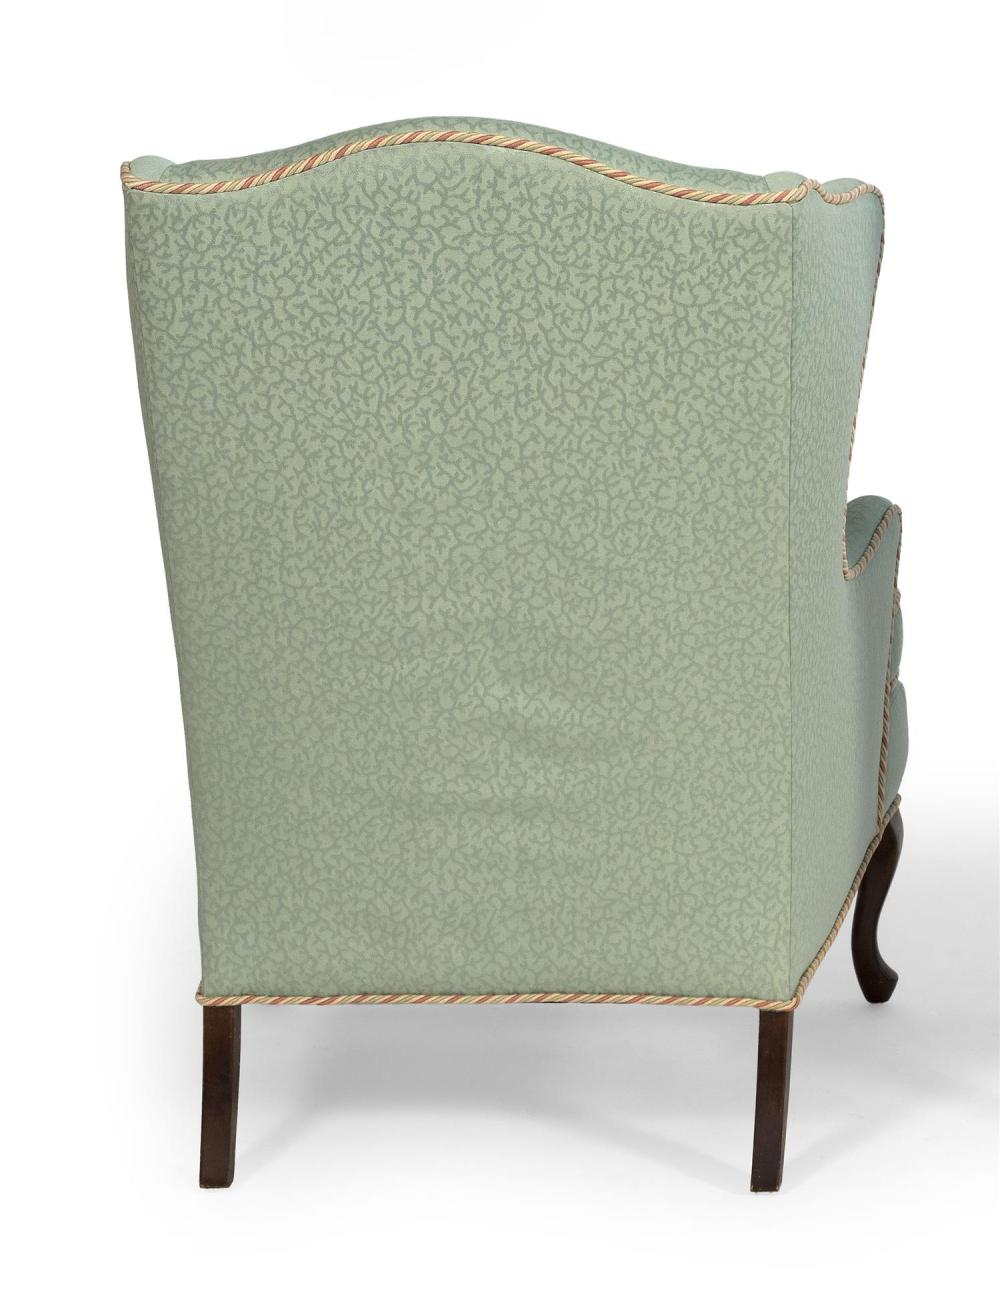 QUEEN ANNE-STYLE WING CHAIR Mahogany legs. Green upholstery. Back height 41.5